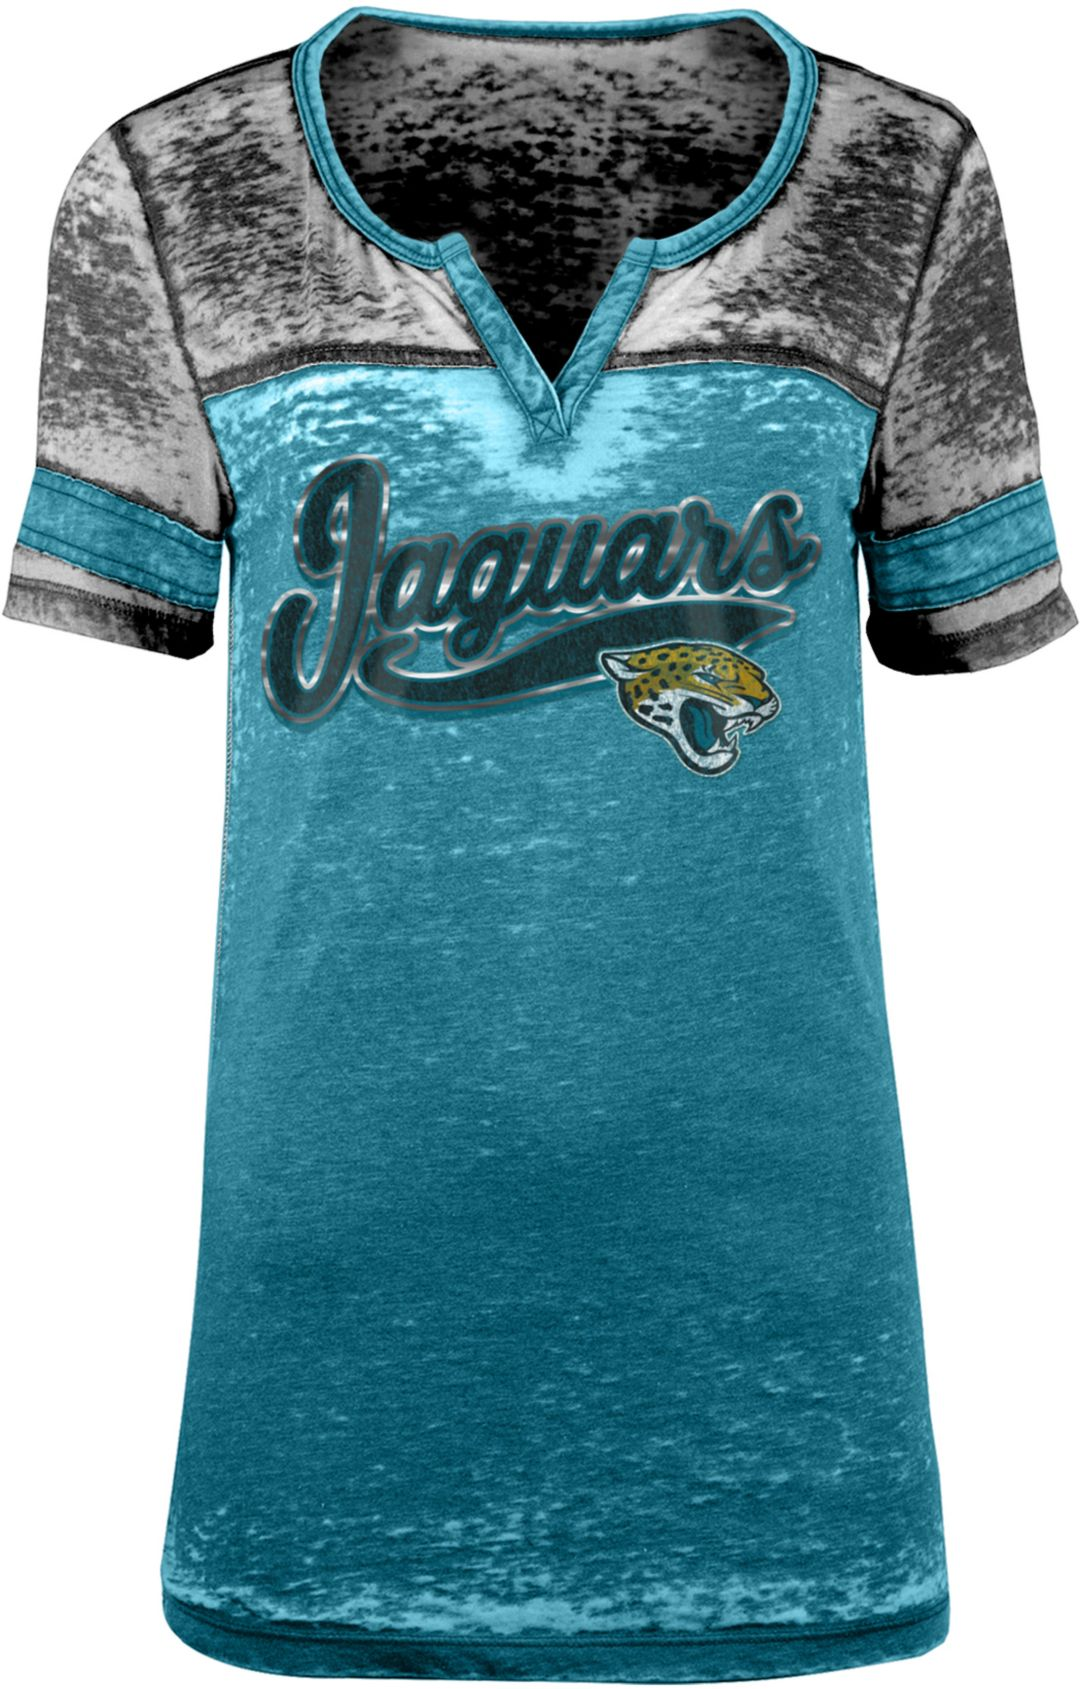 best website 8cf12 e3d79 NFL Team Apparel Women's Jacksonville Jaguars Foil Burnout Teal T-Shirt